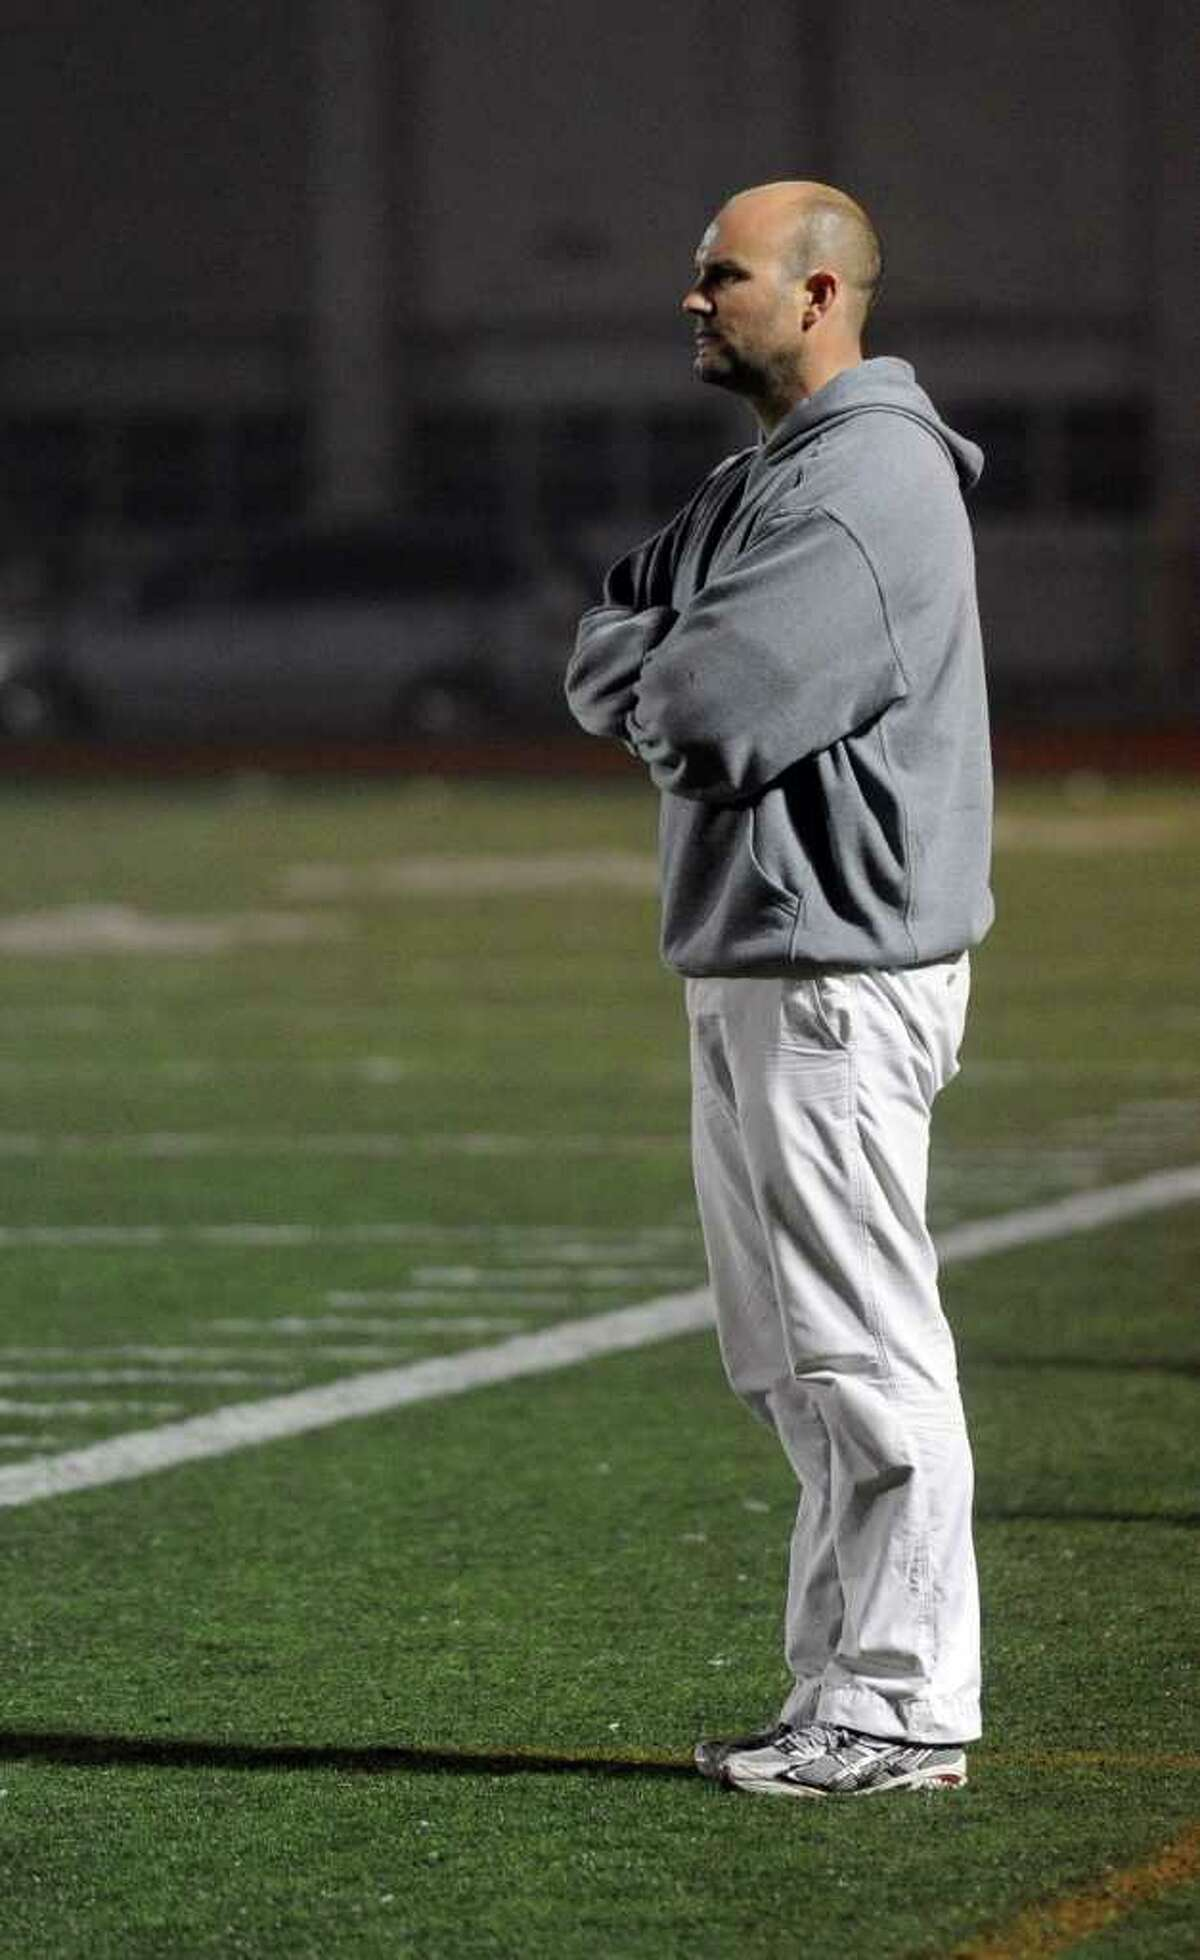 New Canaan coach Alex Whitten watches his team during Wednesday's lacrosse game against New Canaan at Fairfield Ludlowe High School on April 27, 2011.